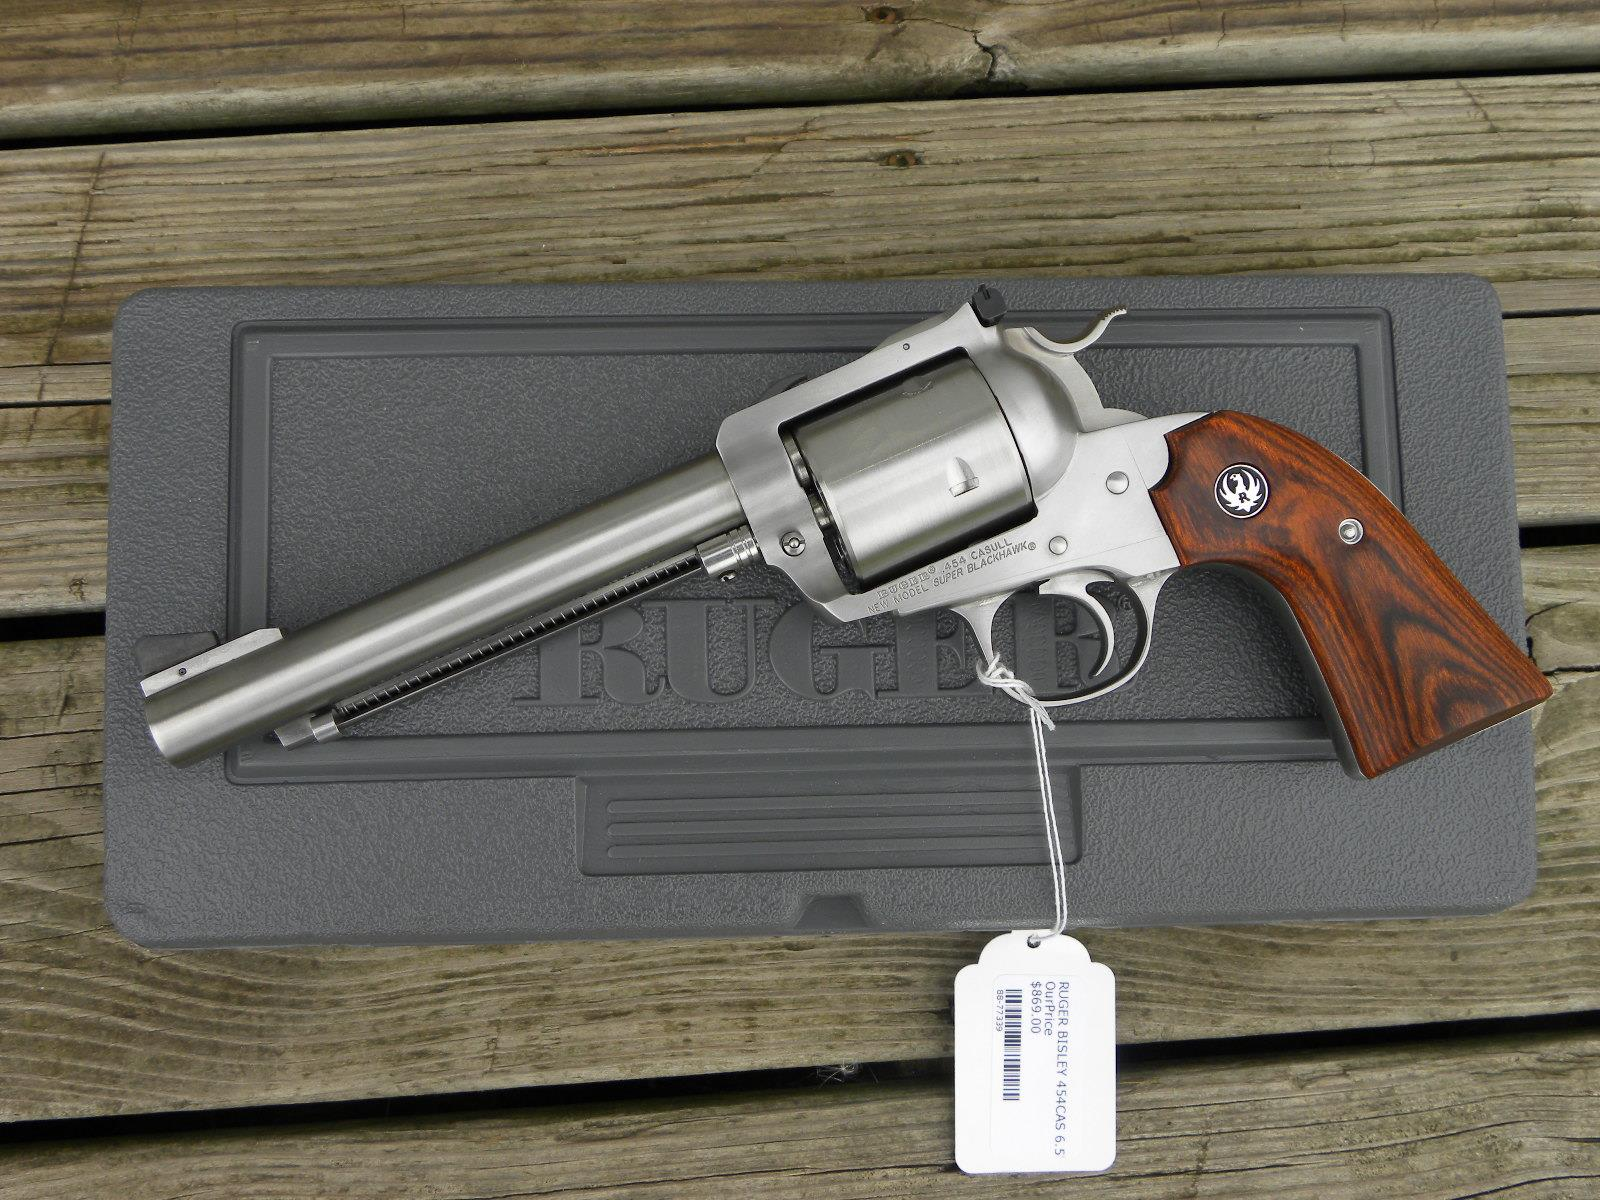 New Ruger Super Blackhawk #0871 .454 Lipseys   Guns > Pistols > Ruger Single Action Revolvers > Blackhawk Type